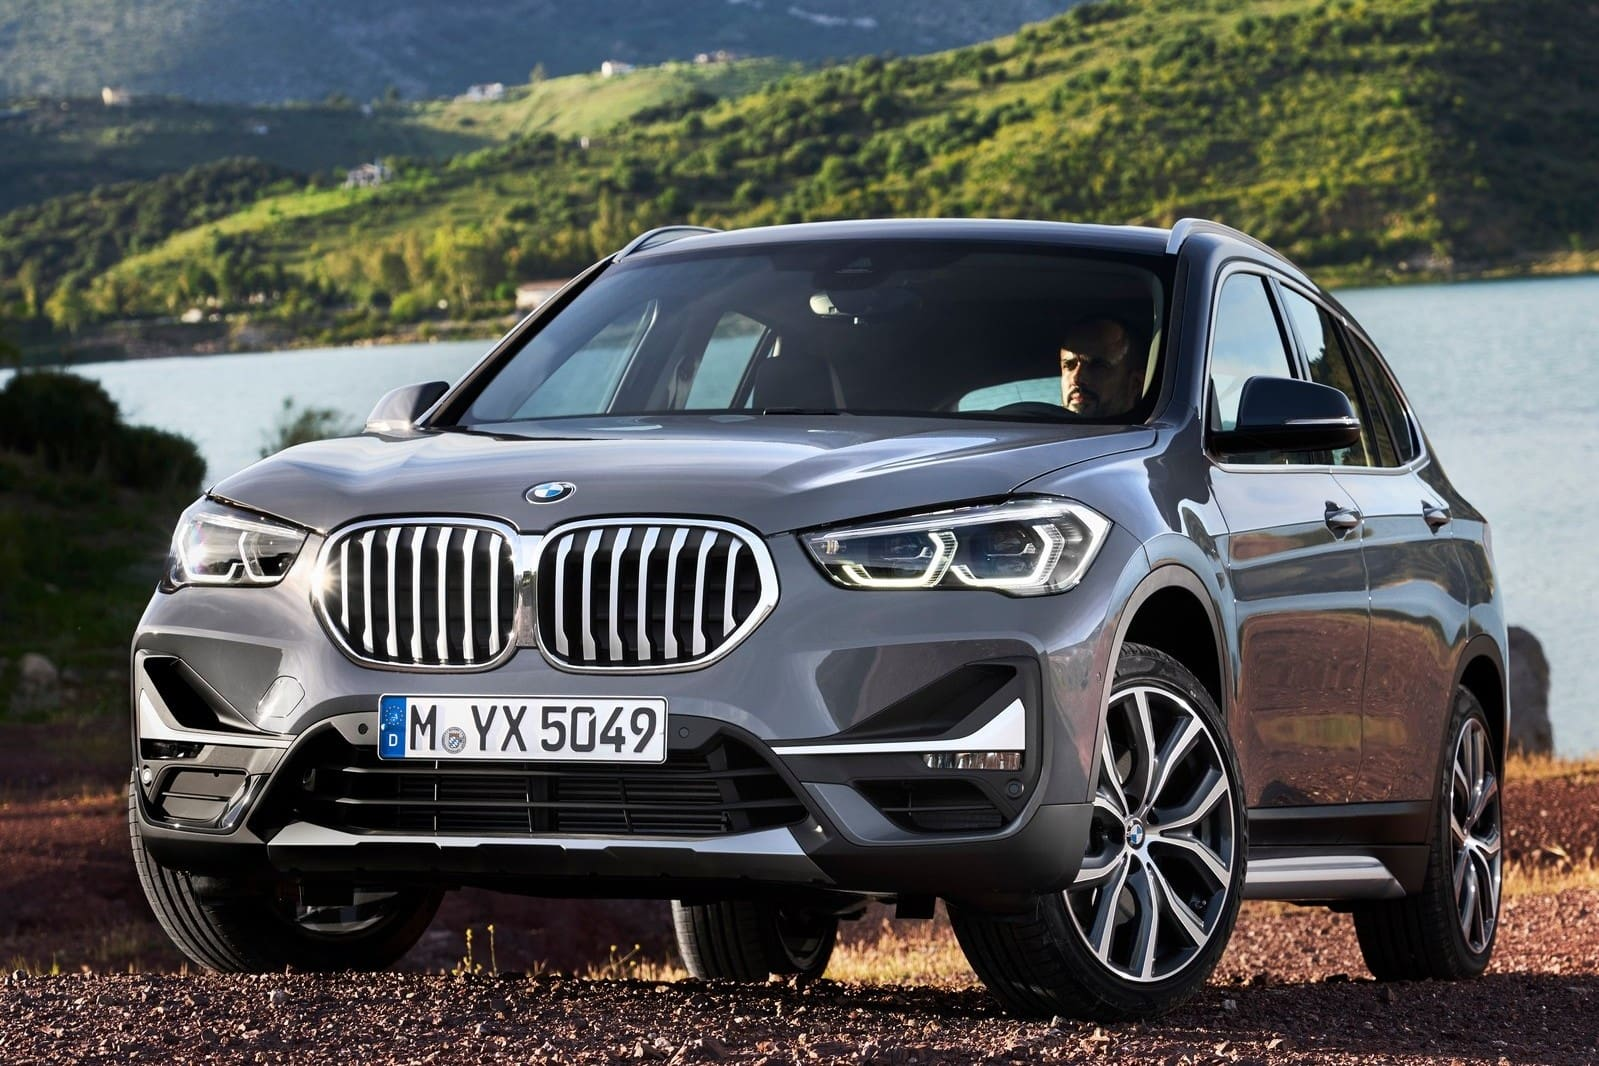 Bmw Cars Price In India New Car Models 2019 Photos Specs